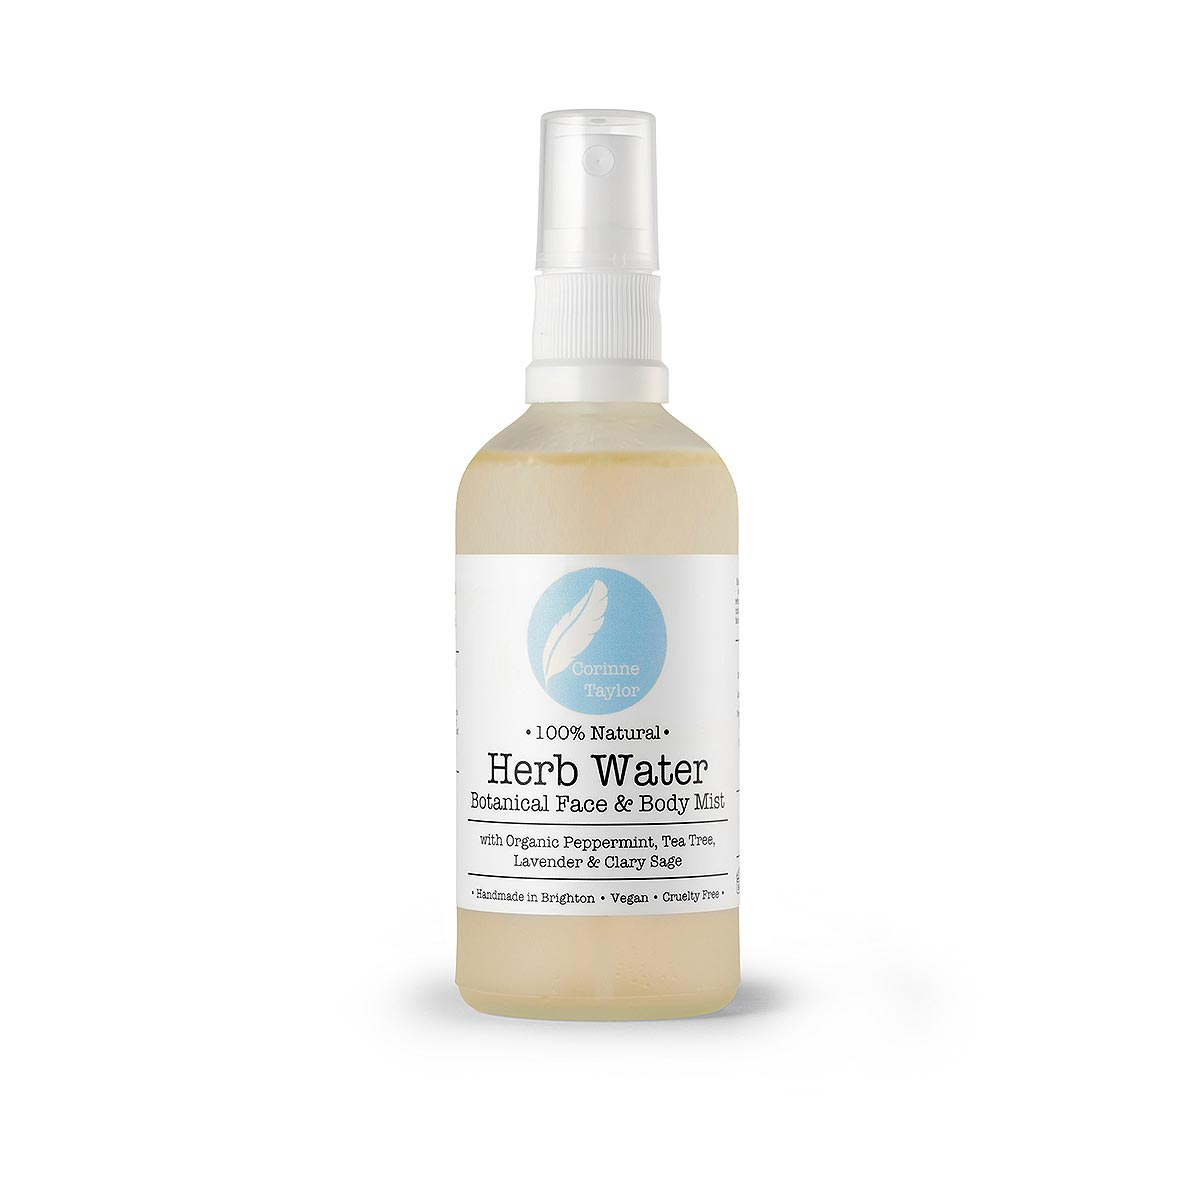 bottle of herb water on white background